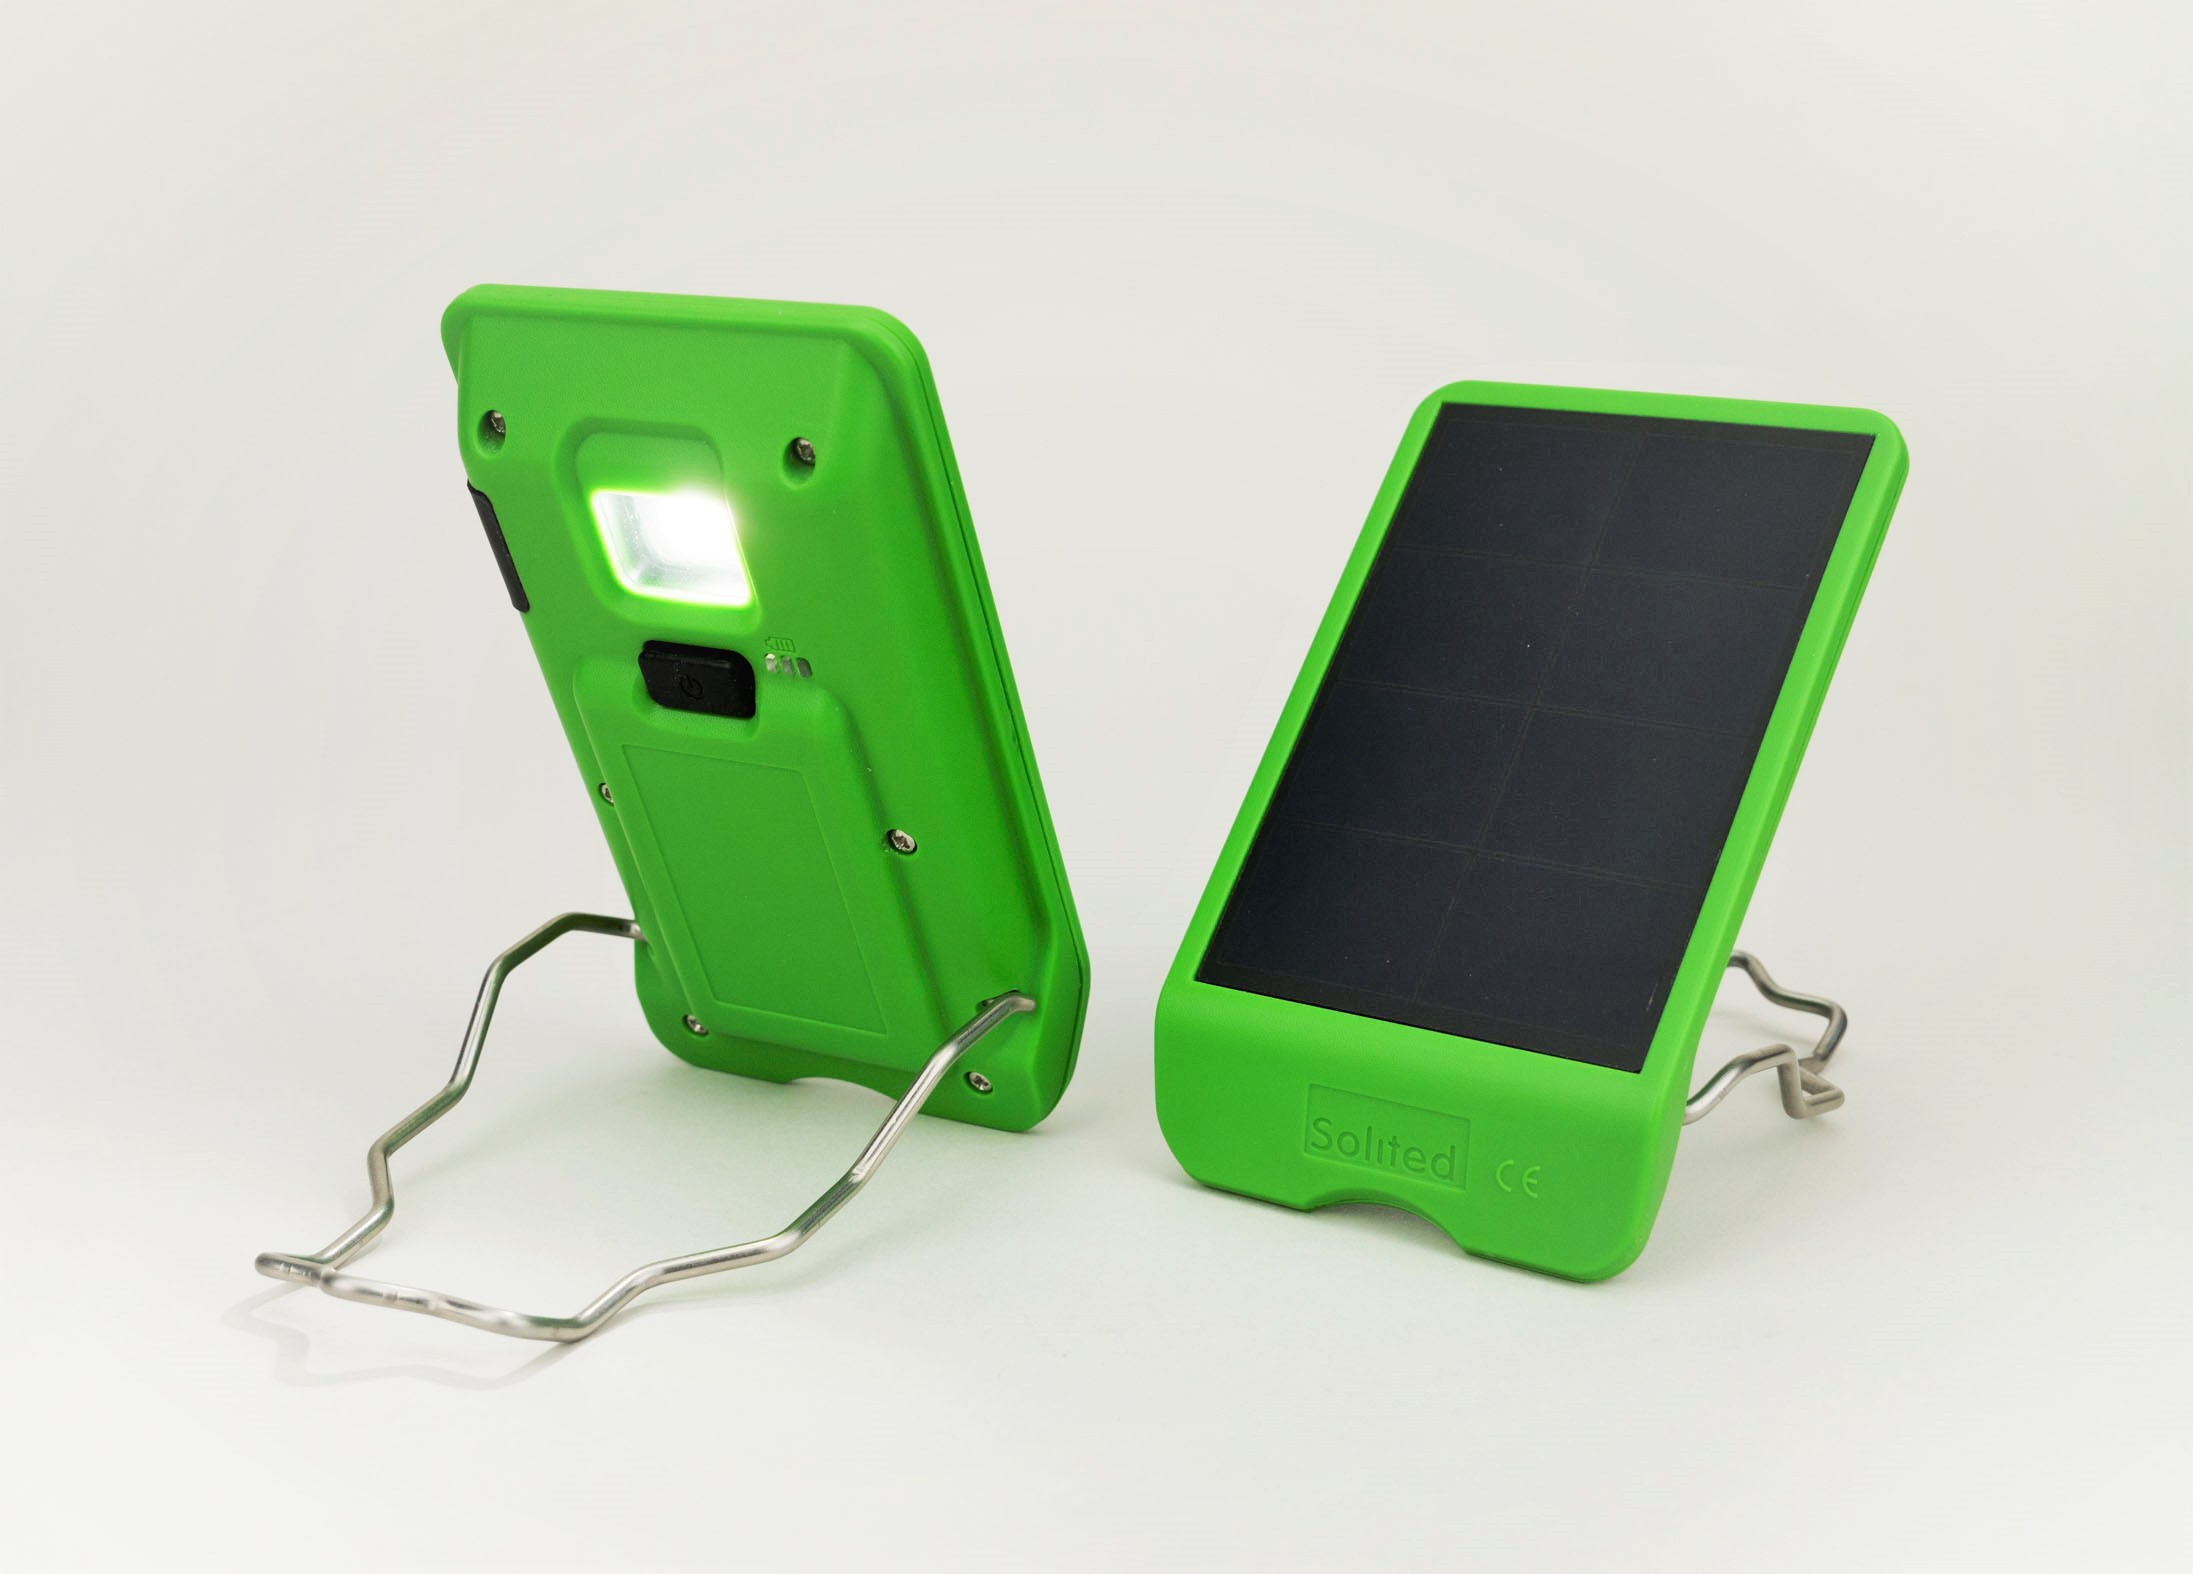 SOLITED SOLAR LED CHARGER €46,95